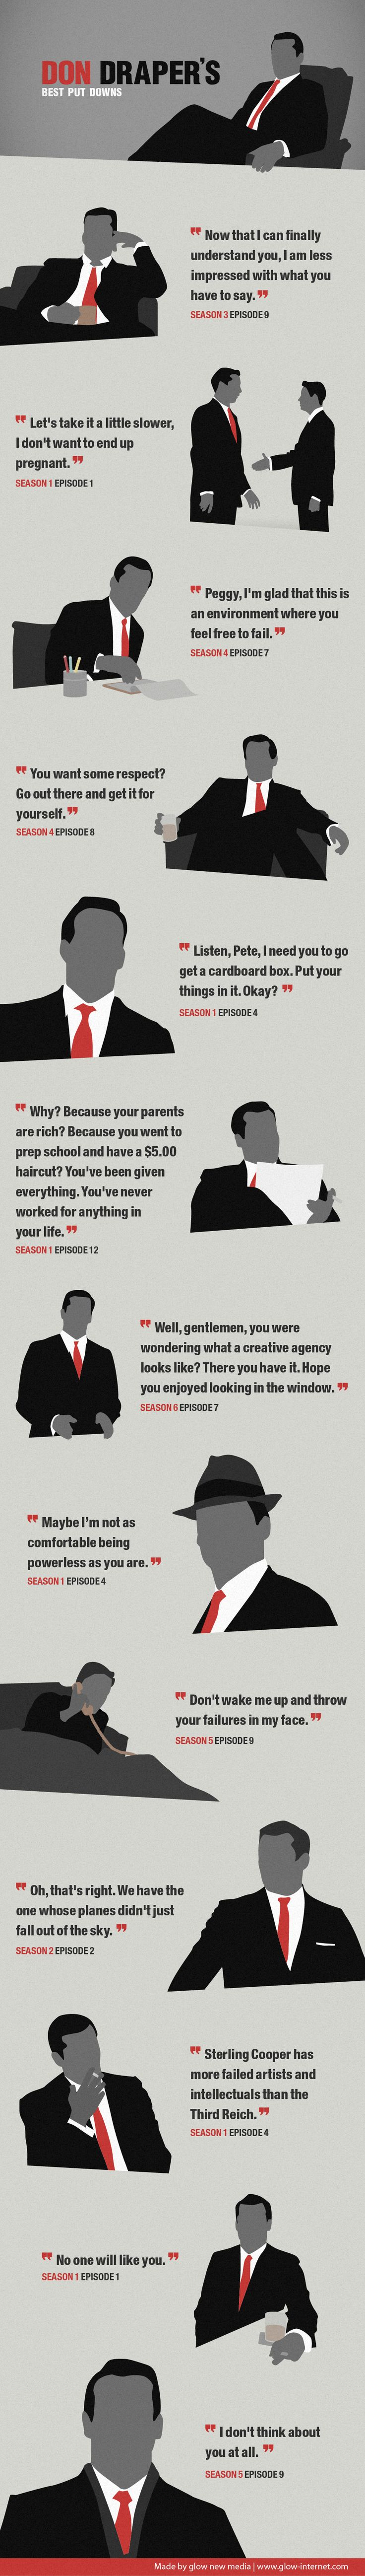 122 best Mad Men style images on Pinterest | Mad men quotes, Betty ...